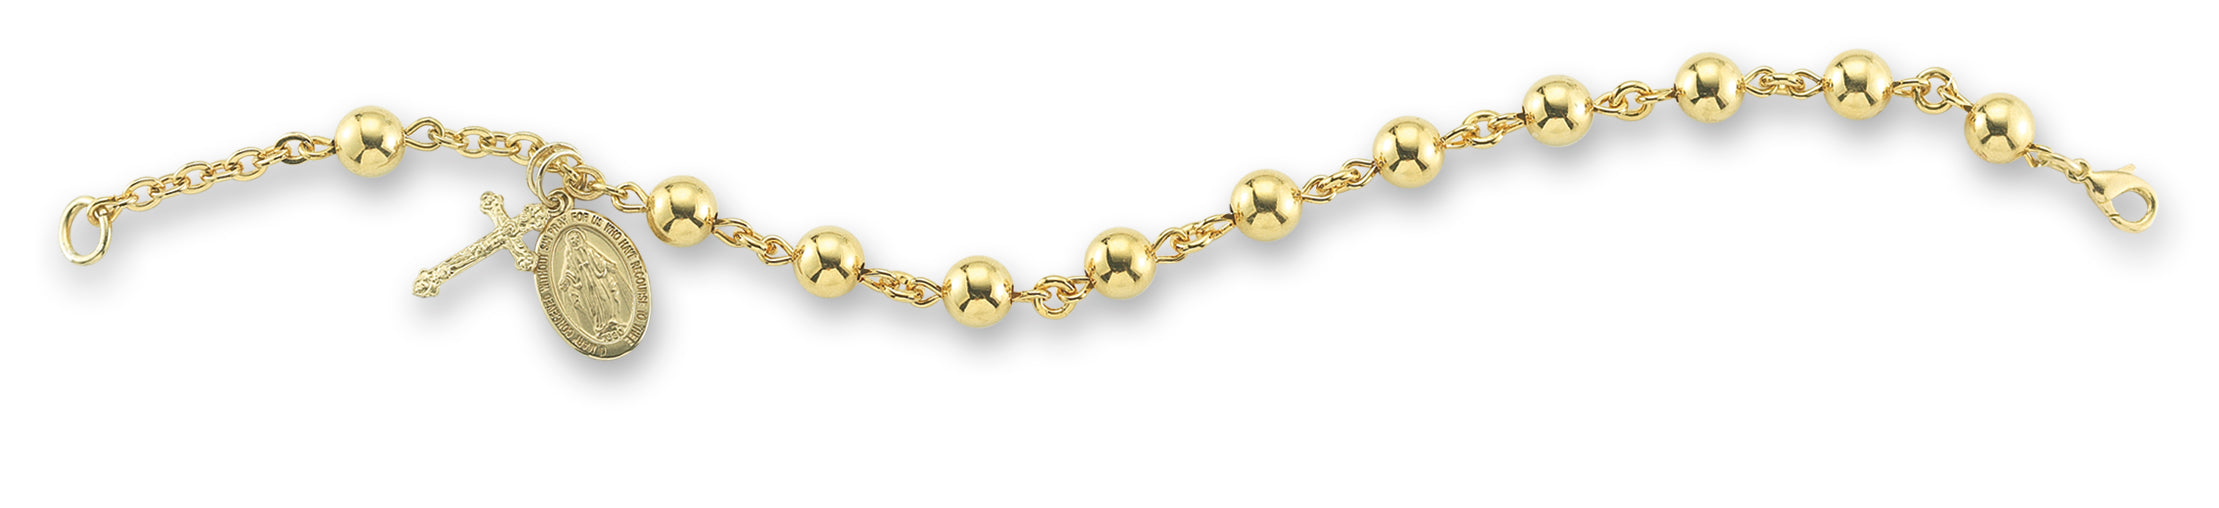 6mm Gold Over Sterling Silver Rosary